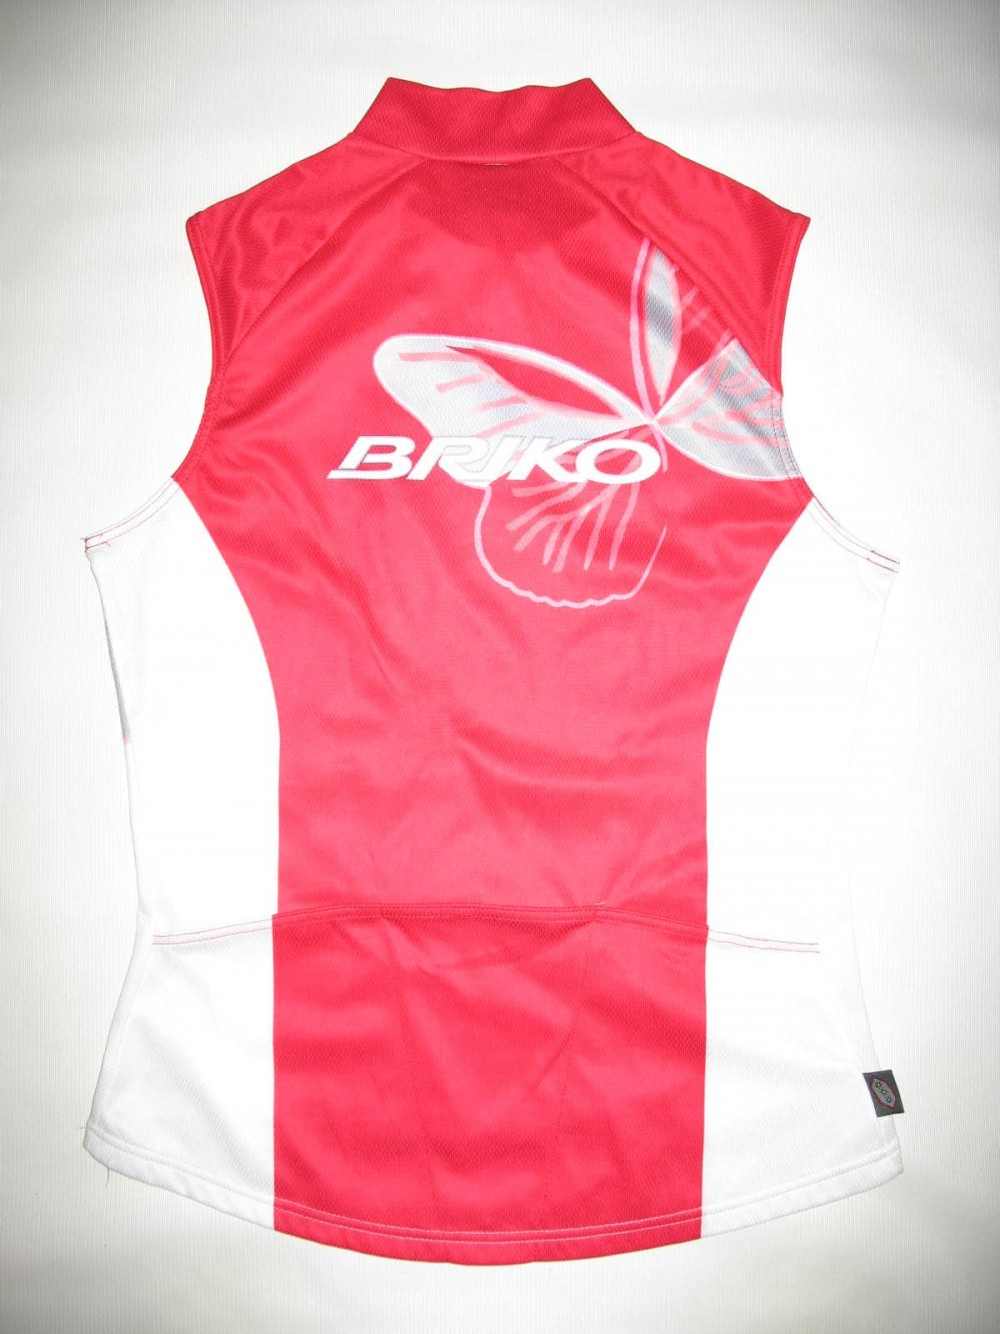 Веломайка BRIKO ss cycling jersey lady (размер M) - 1